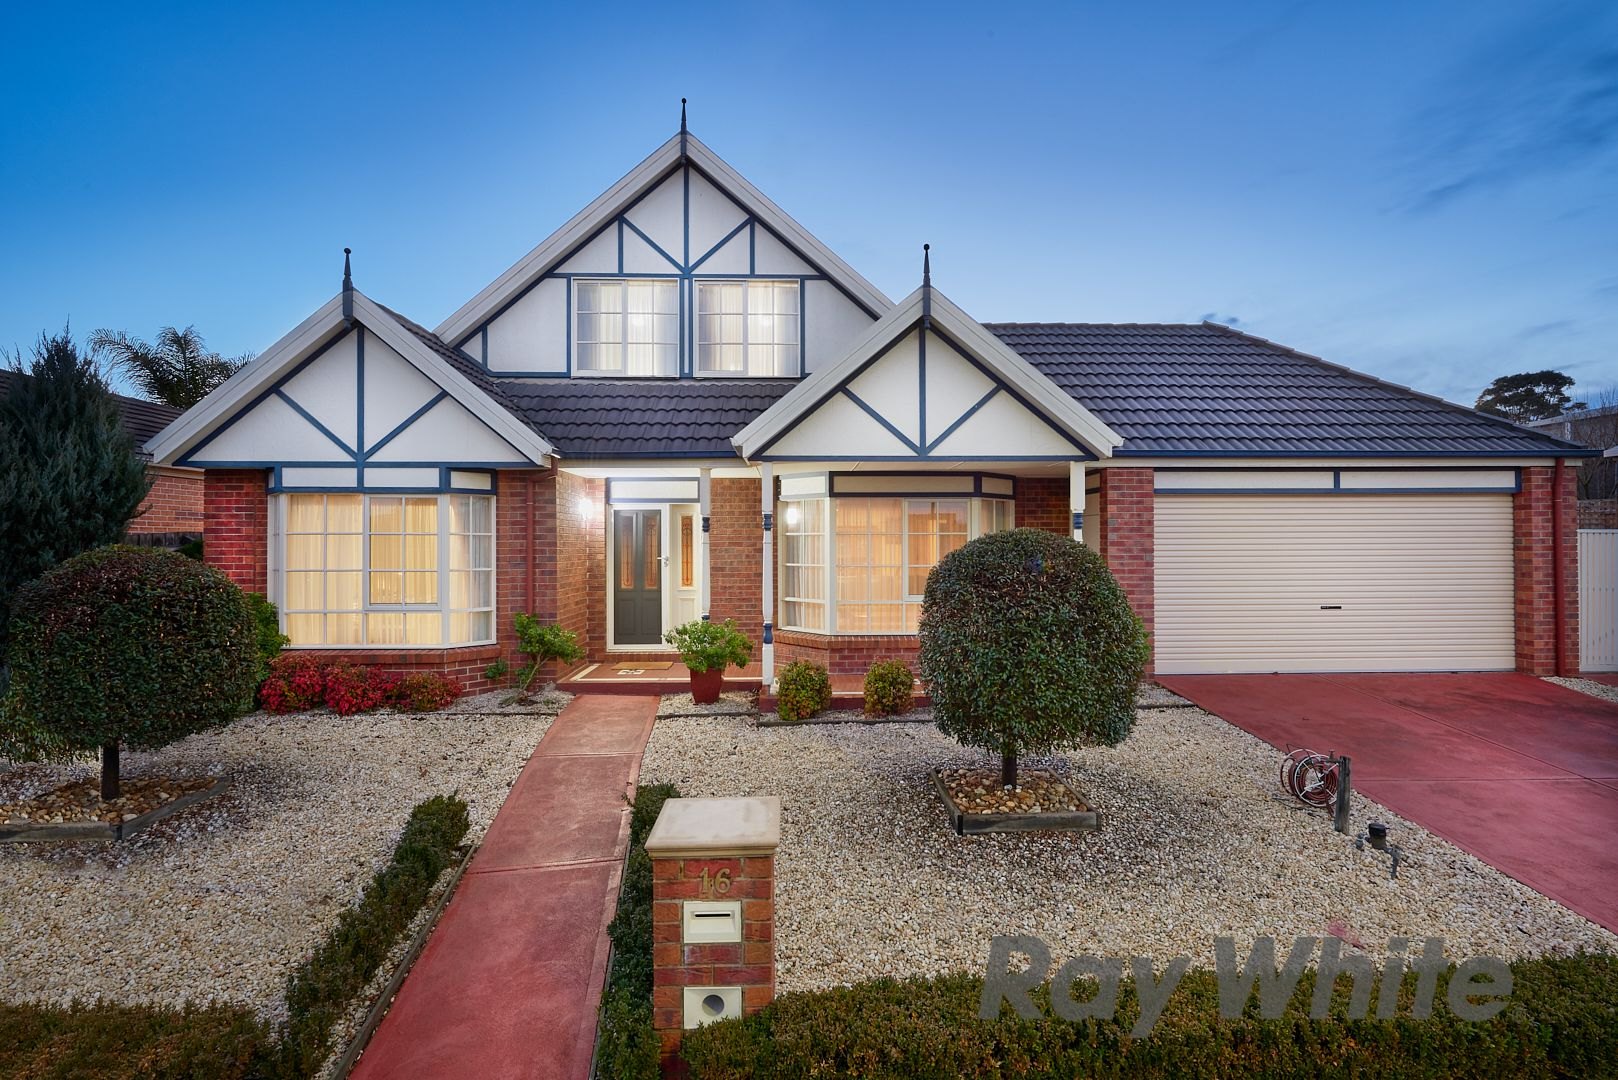 16 Black Knight Street, Mordialloc VIC 3195, Image 0